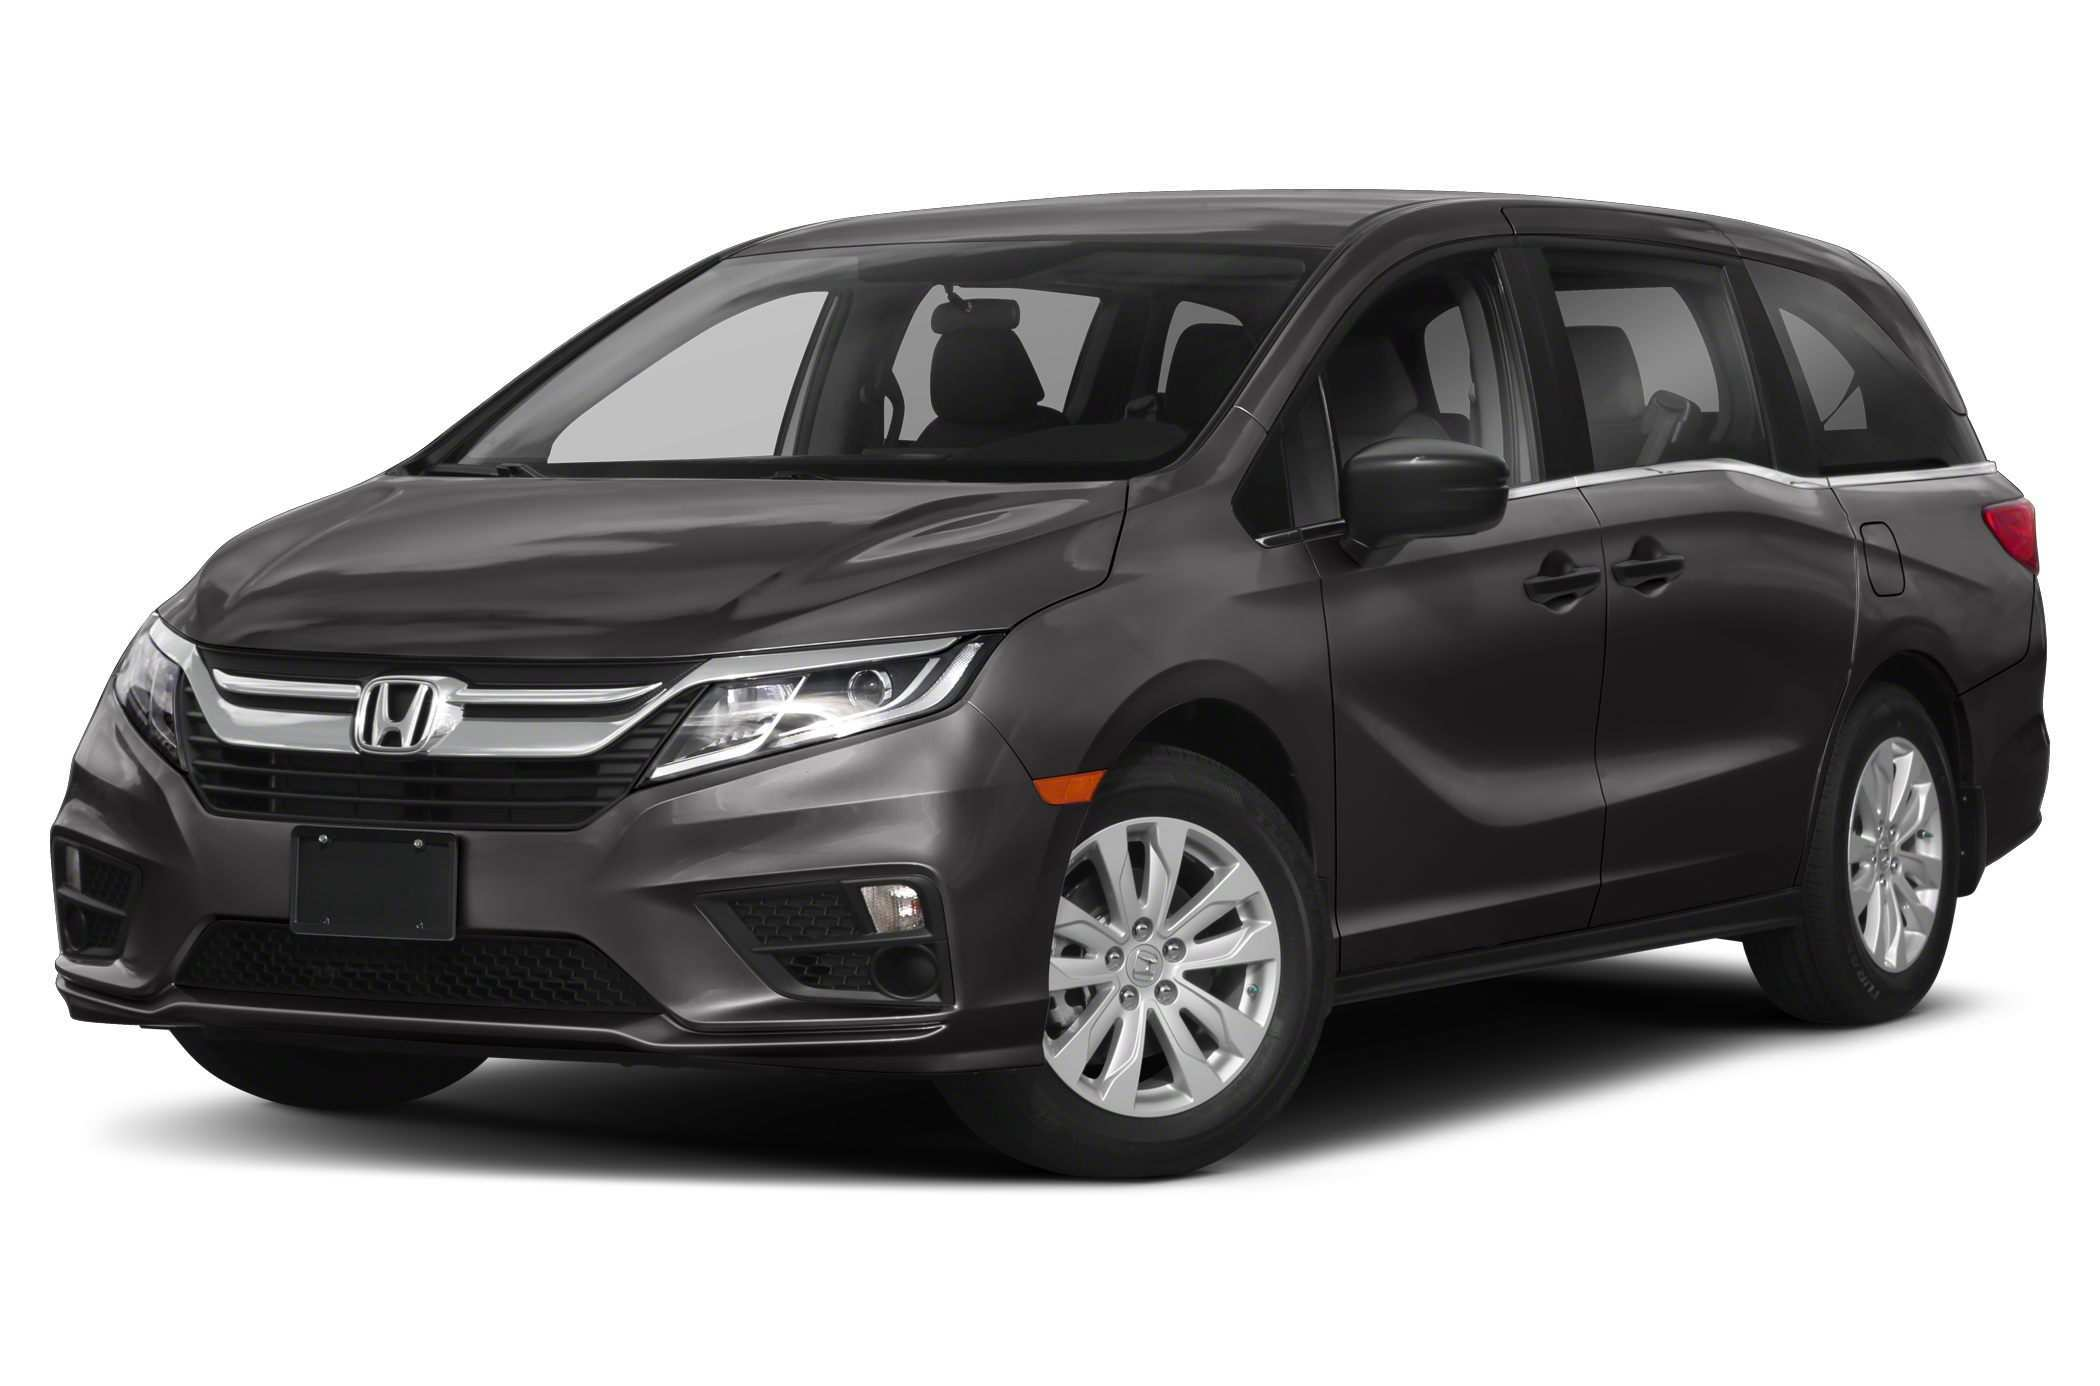 43 The Best 2019 Honda Odyssey Release